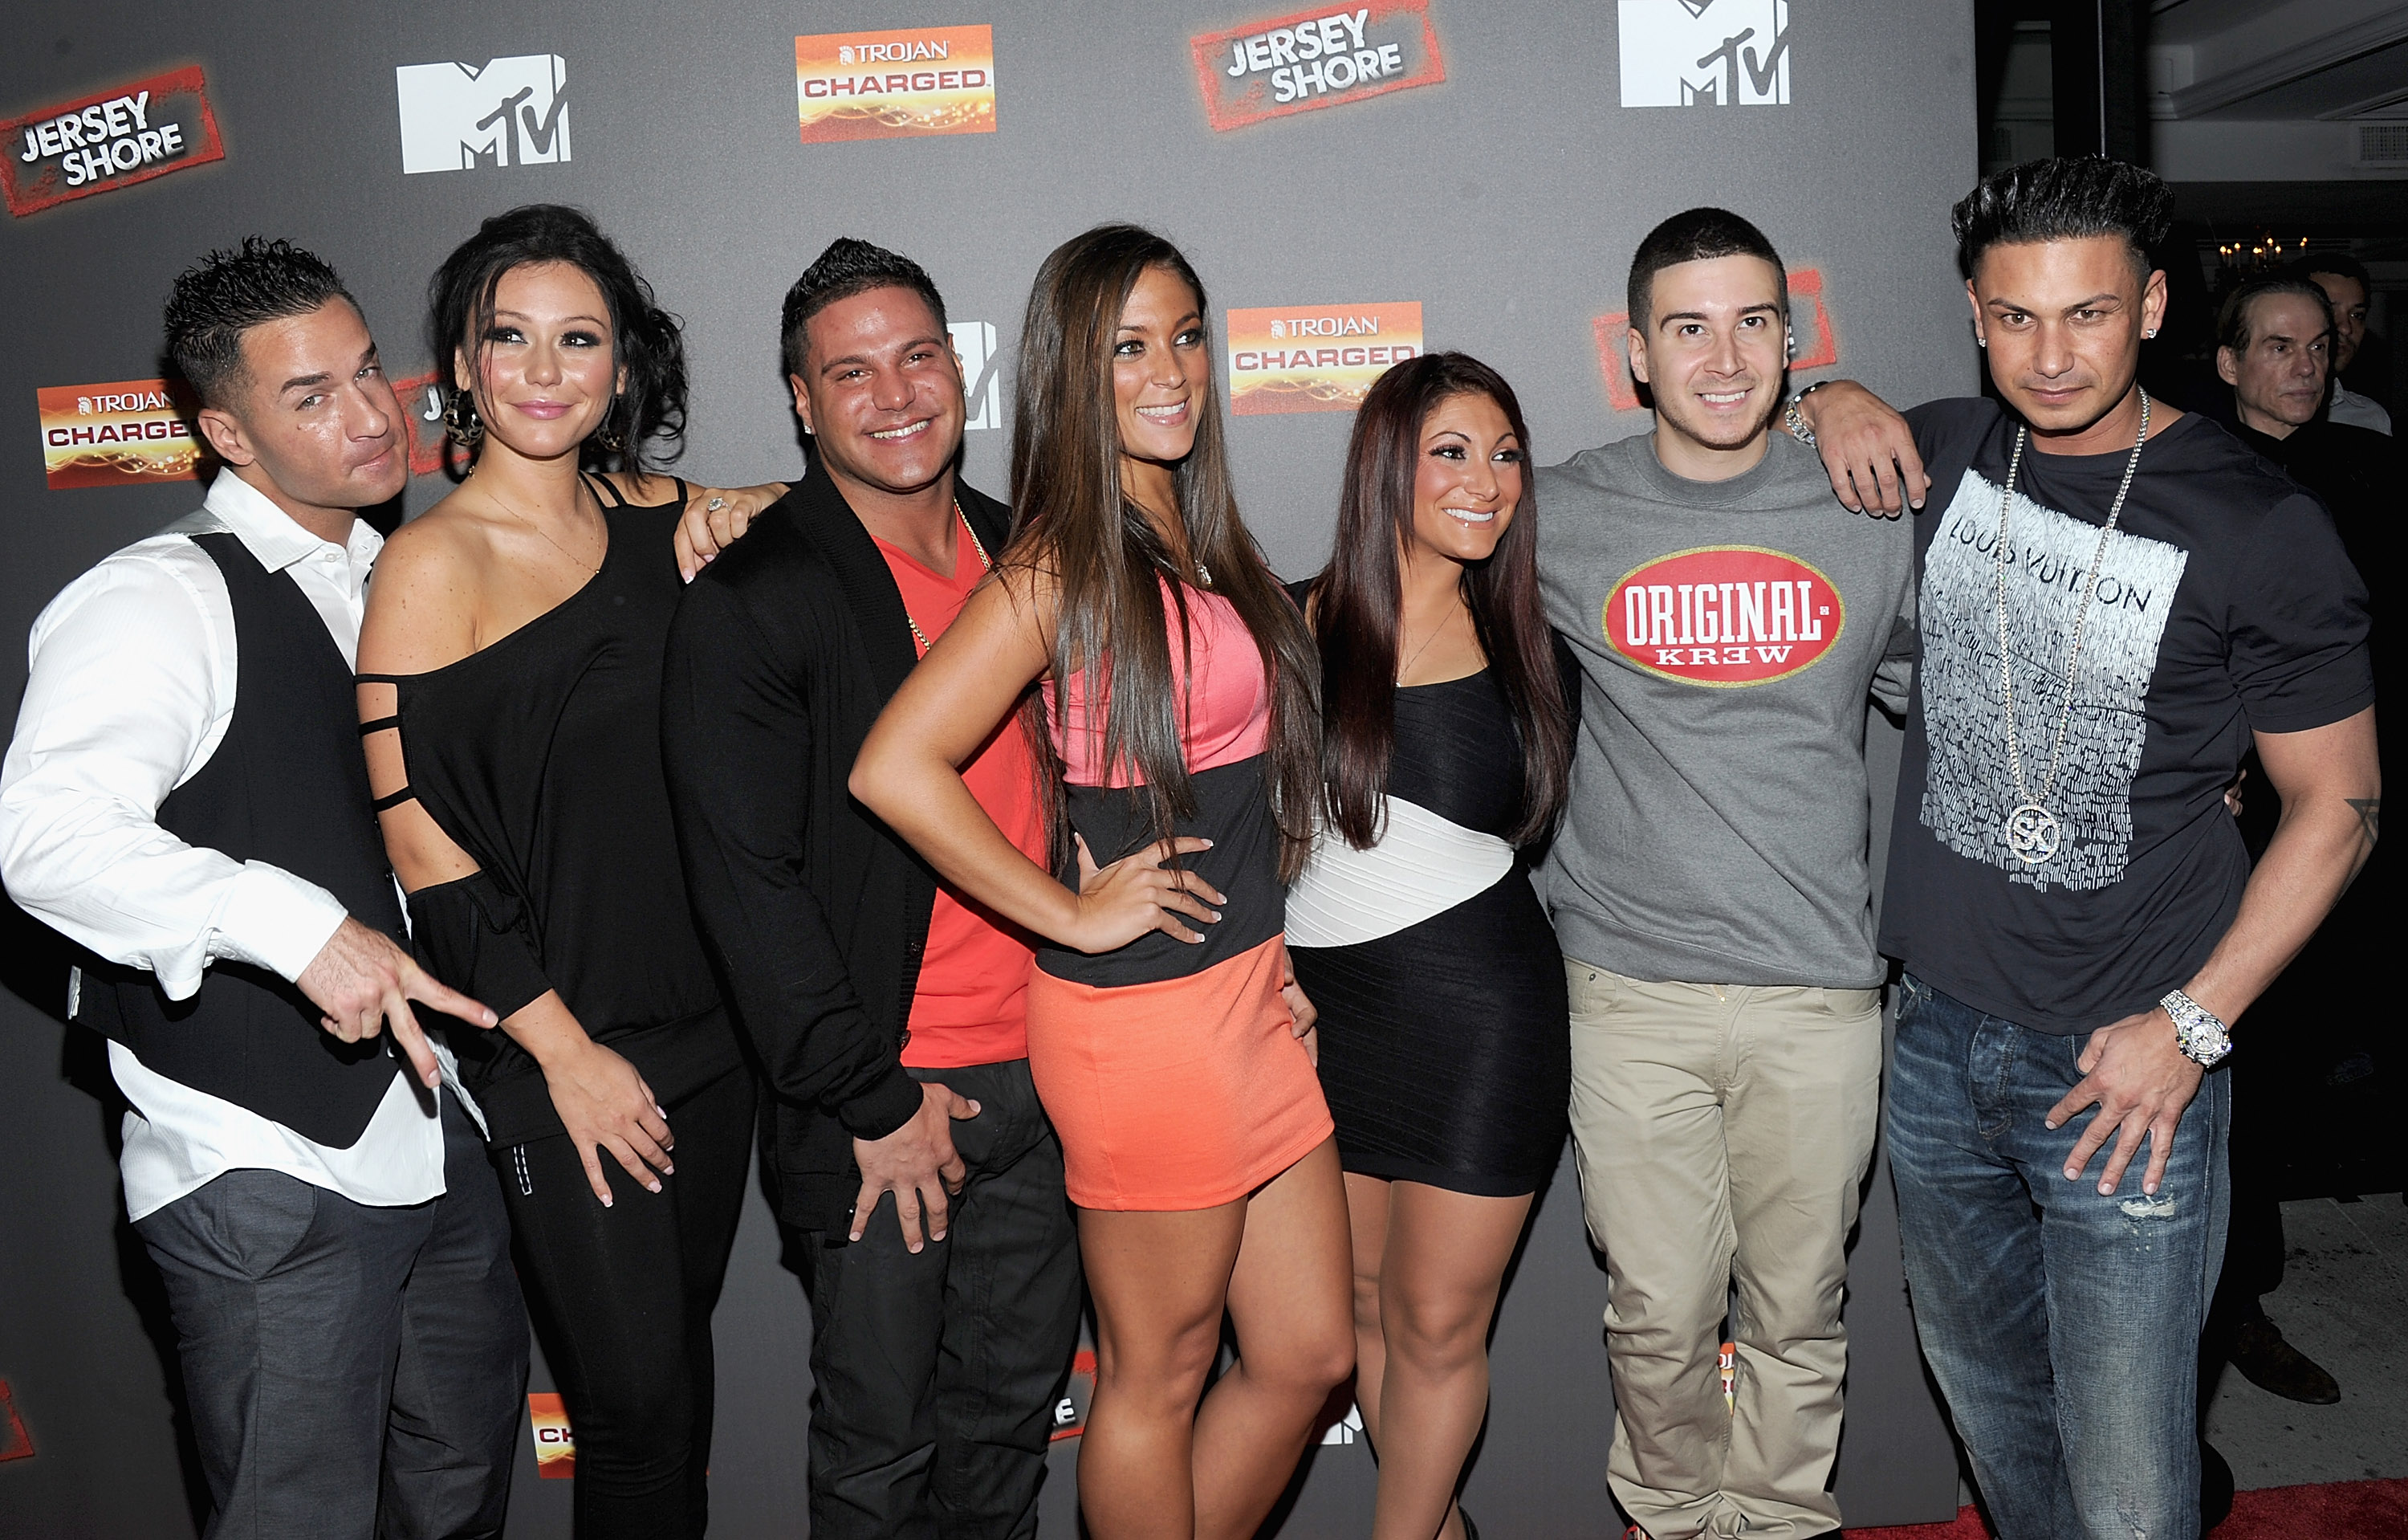 Who is vinny from jersey shore hookup 2018